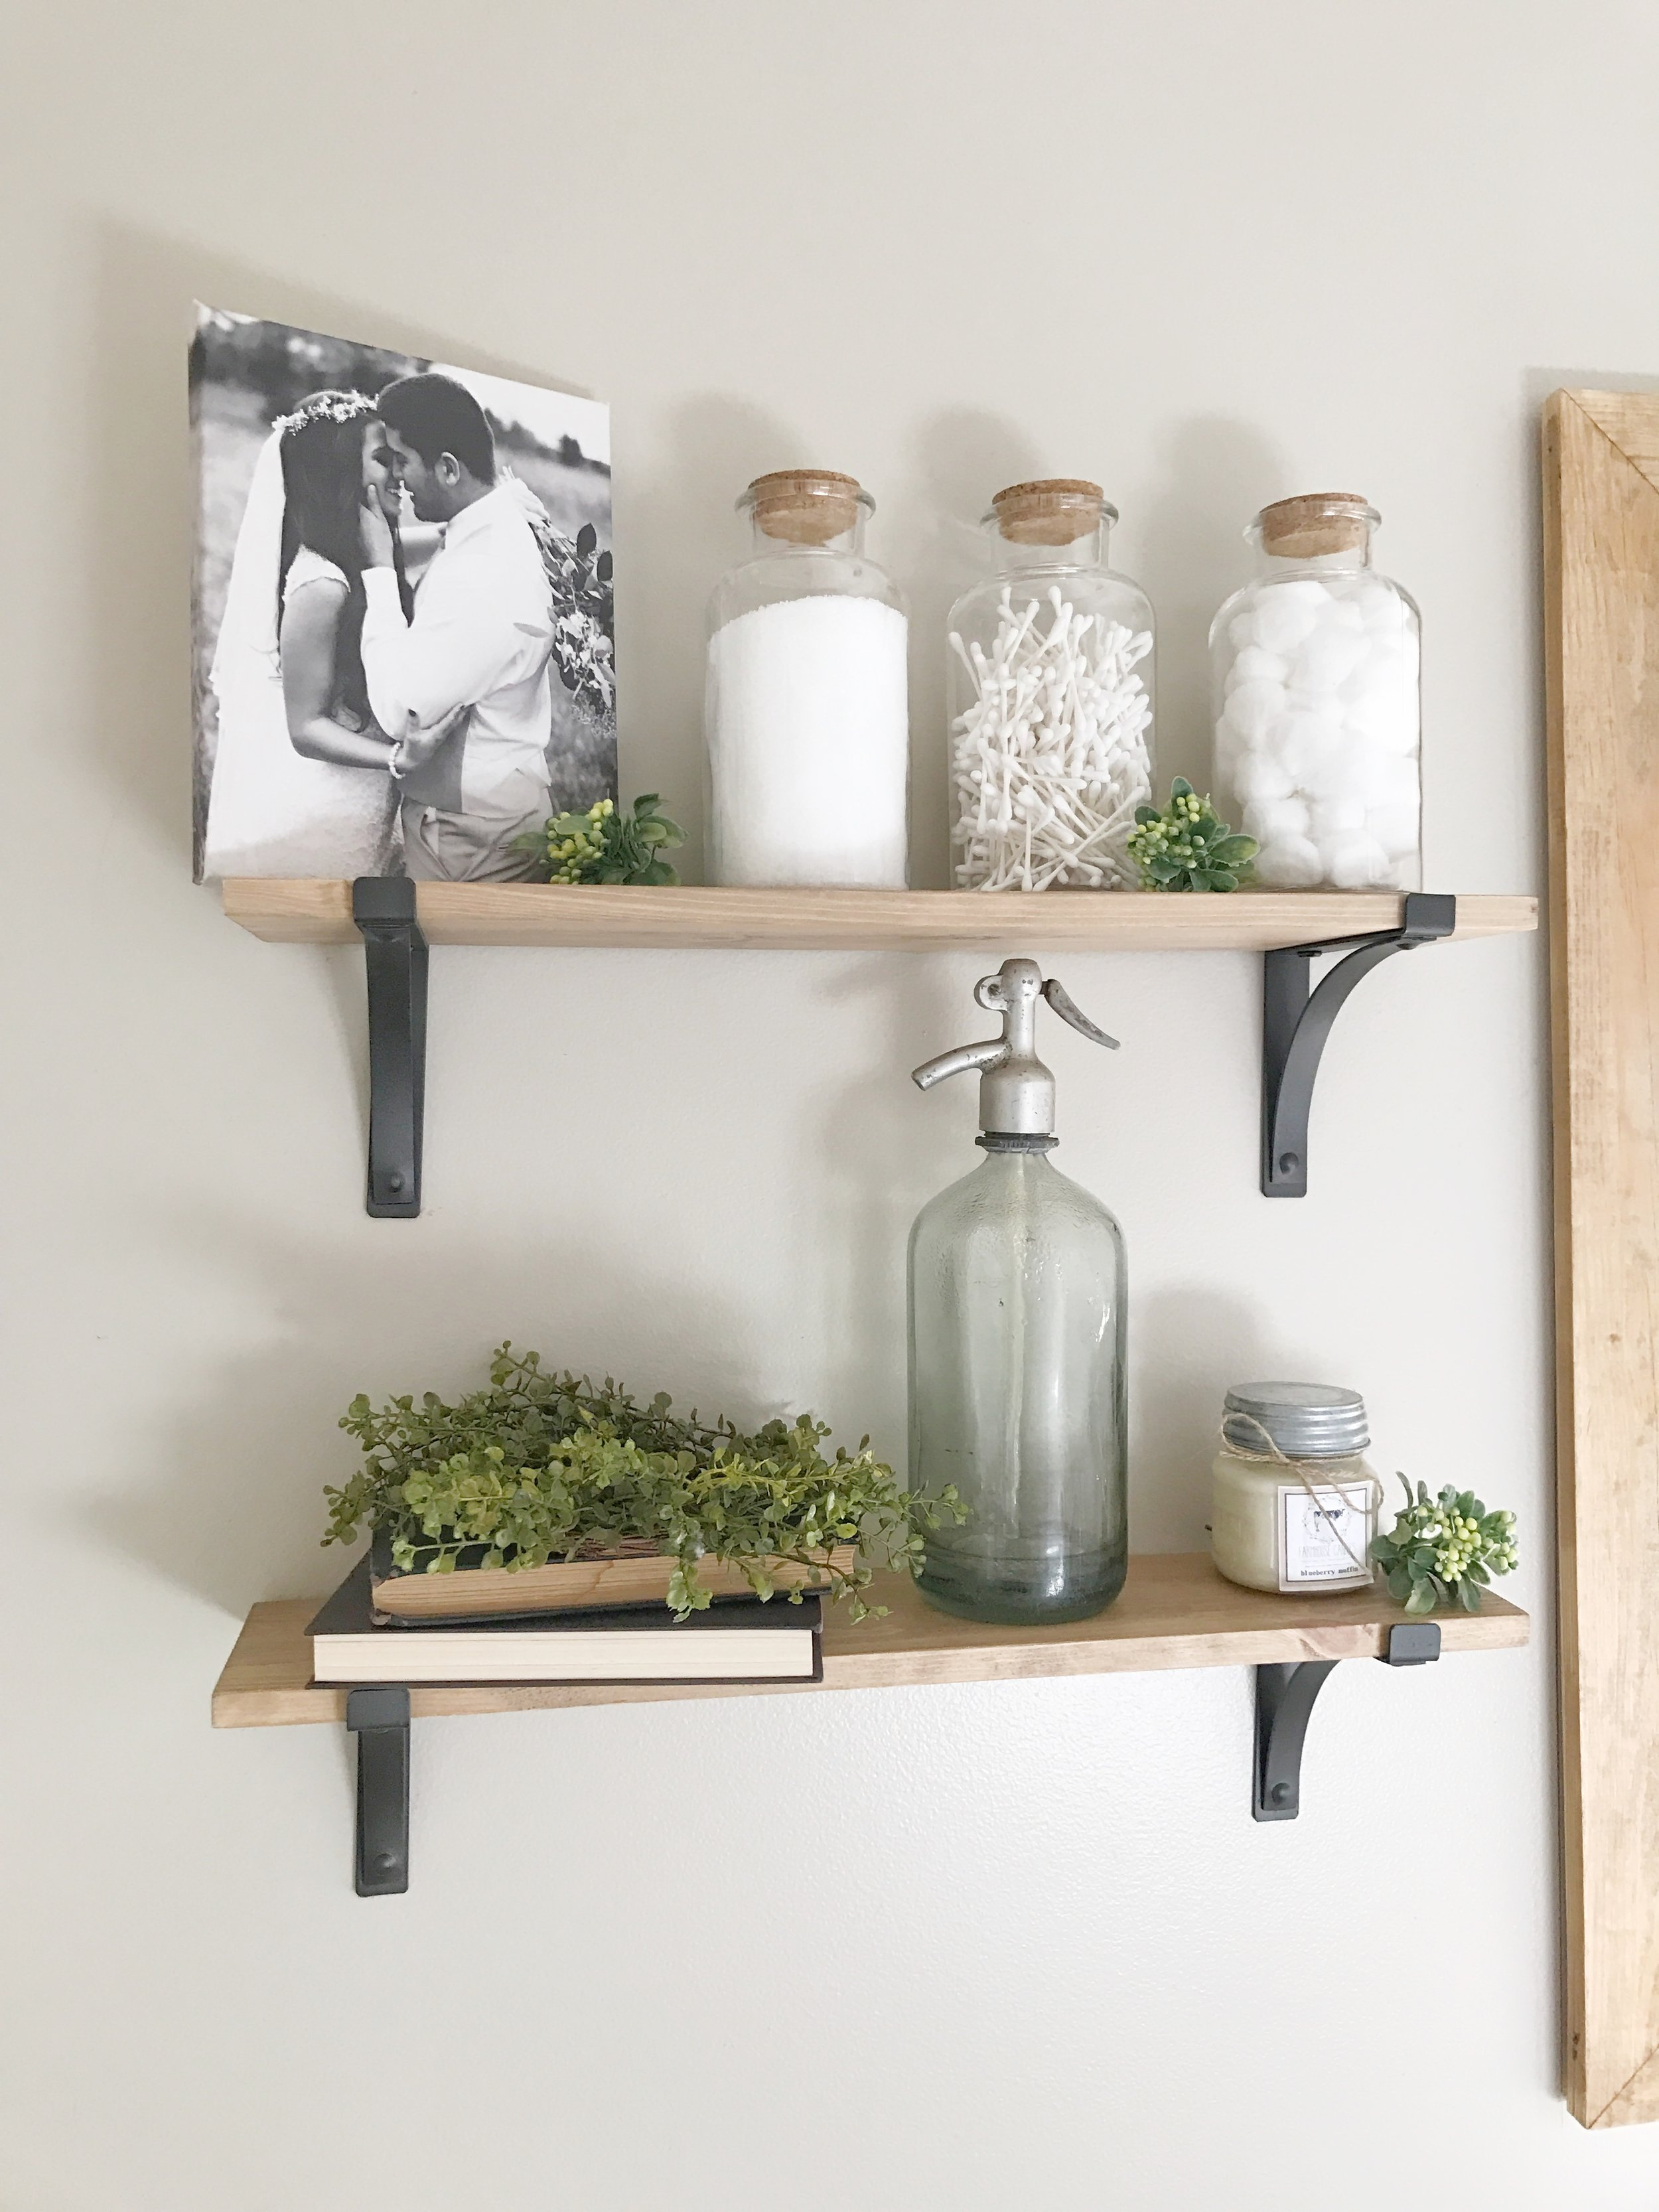 The Simple Abode Interior Design Project- Farmhouse Style Bathroom Styled Wooden Shelves- By Plum Pretty Decor and Design